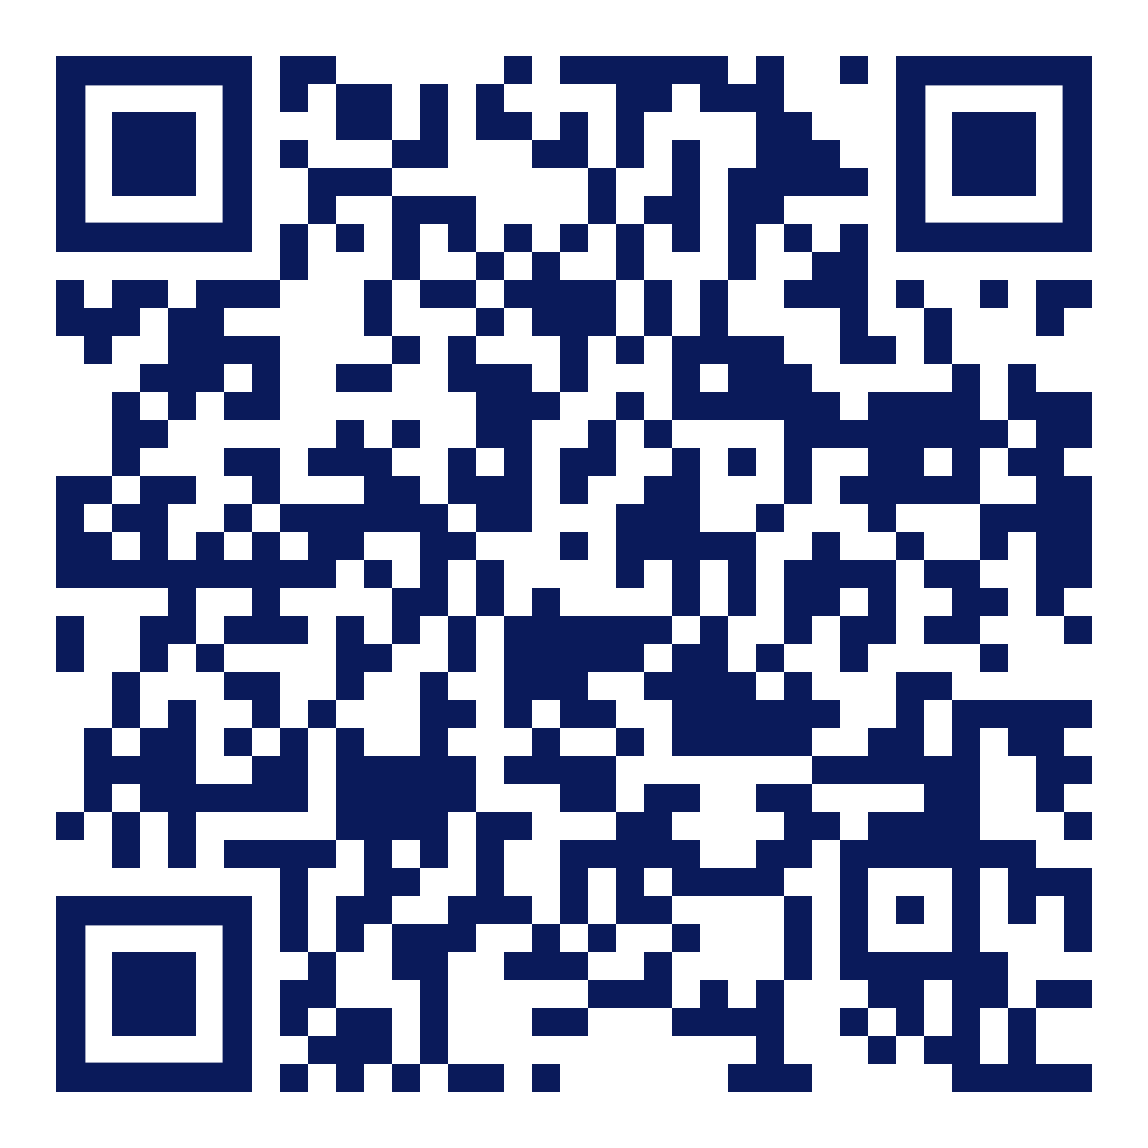 QRCode do Android